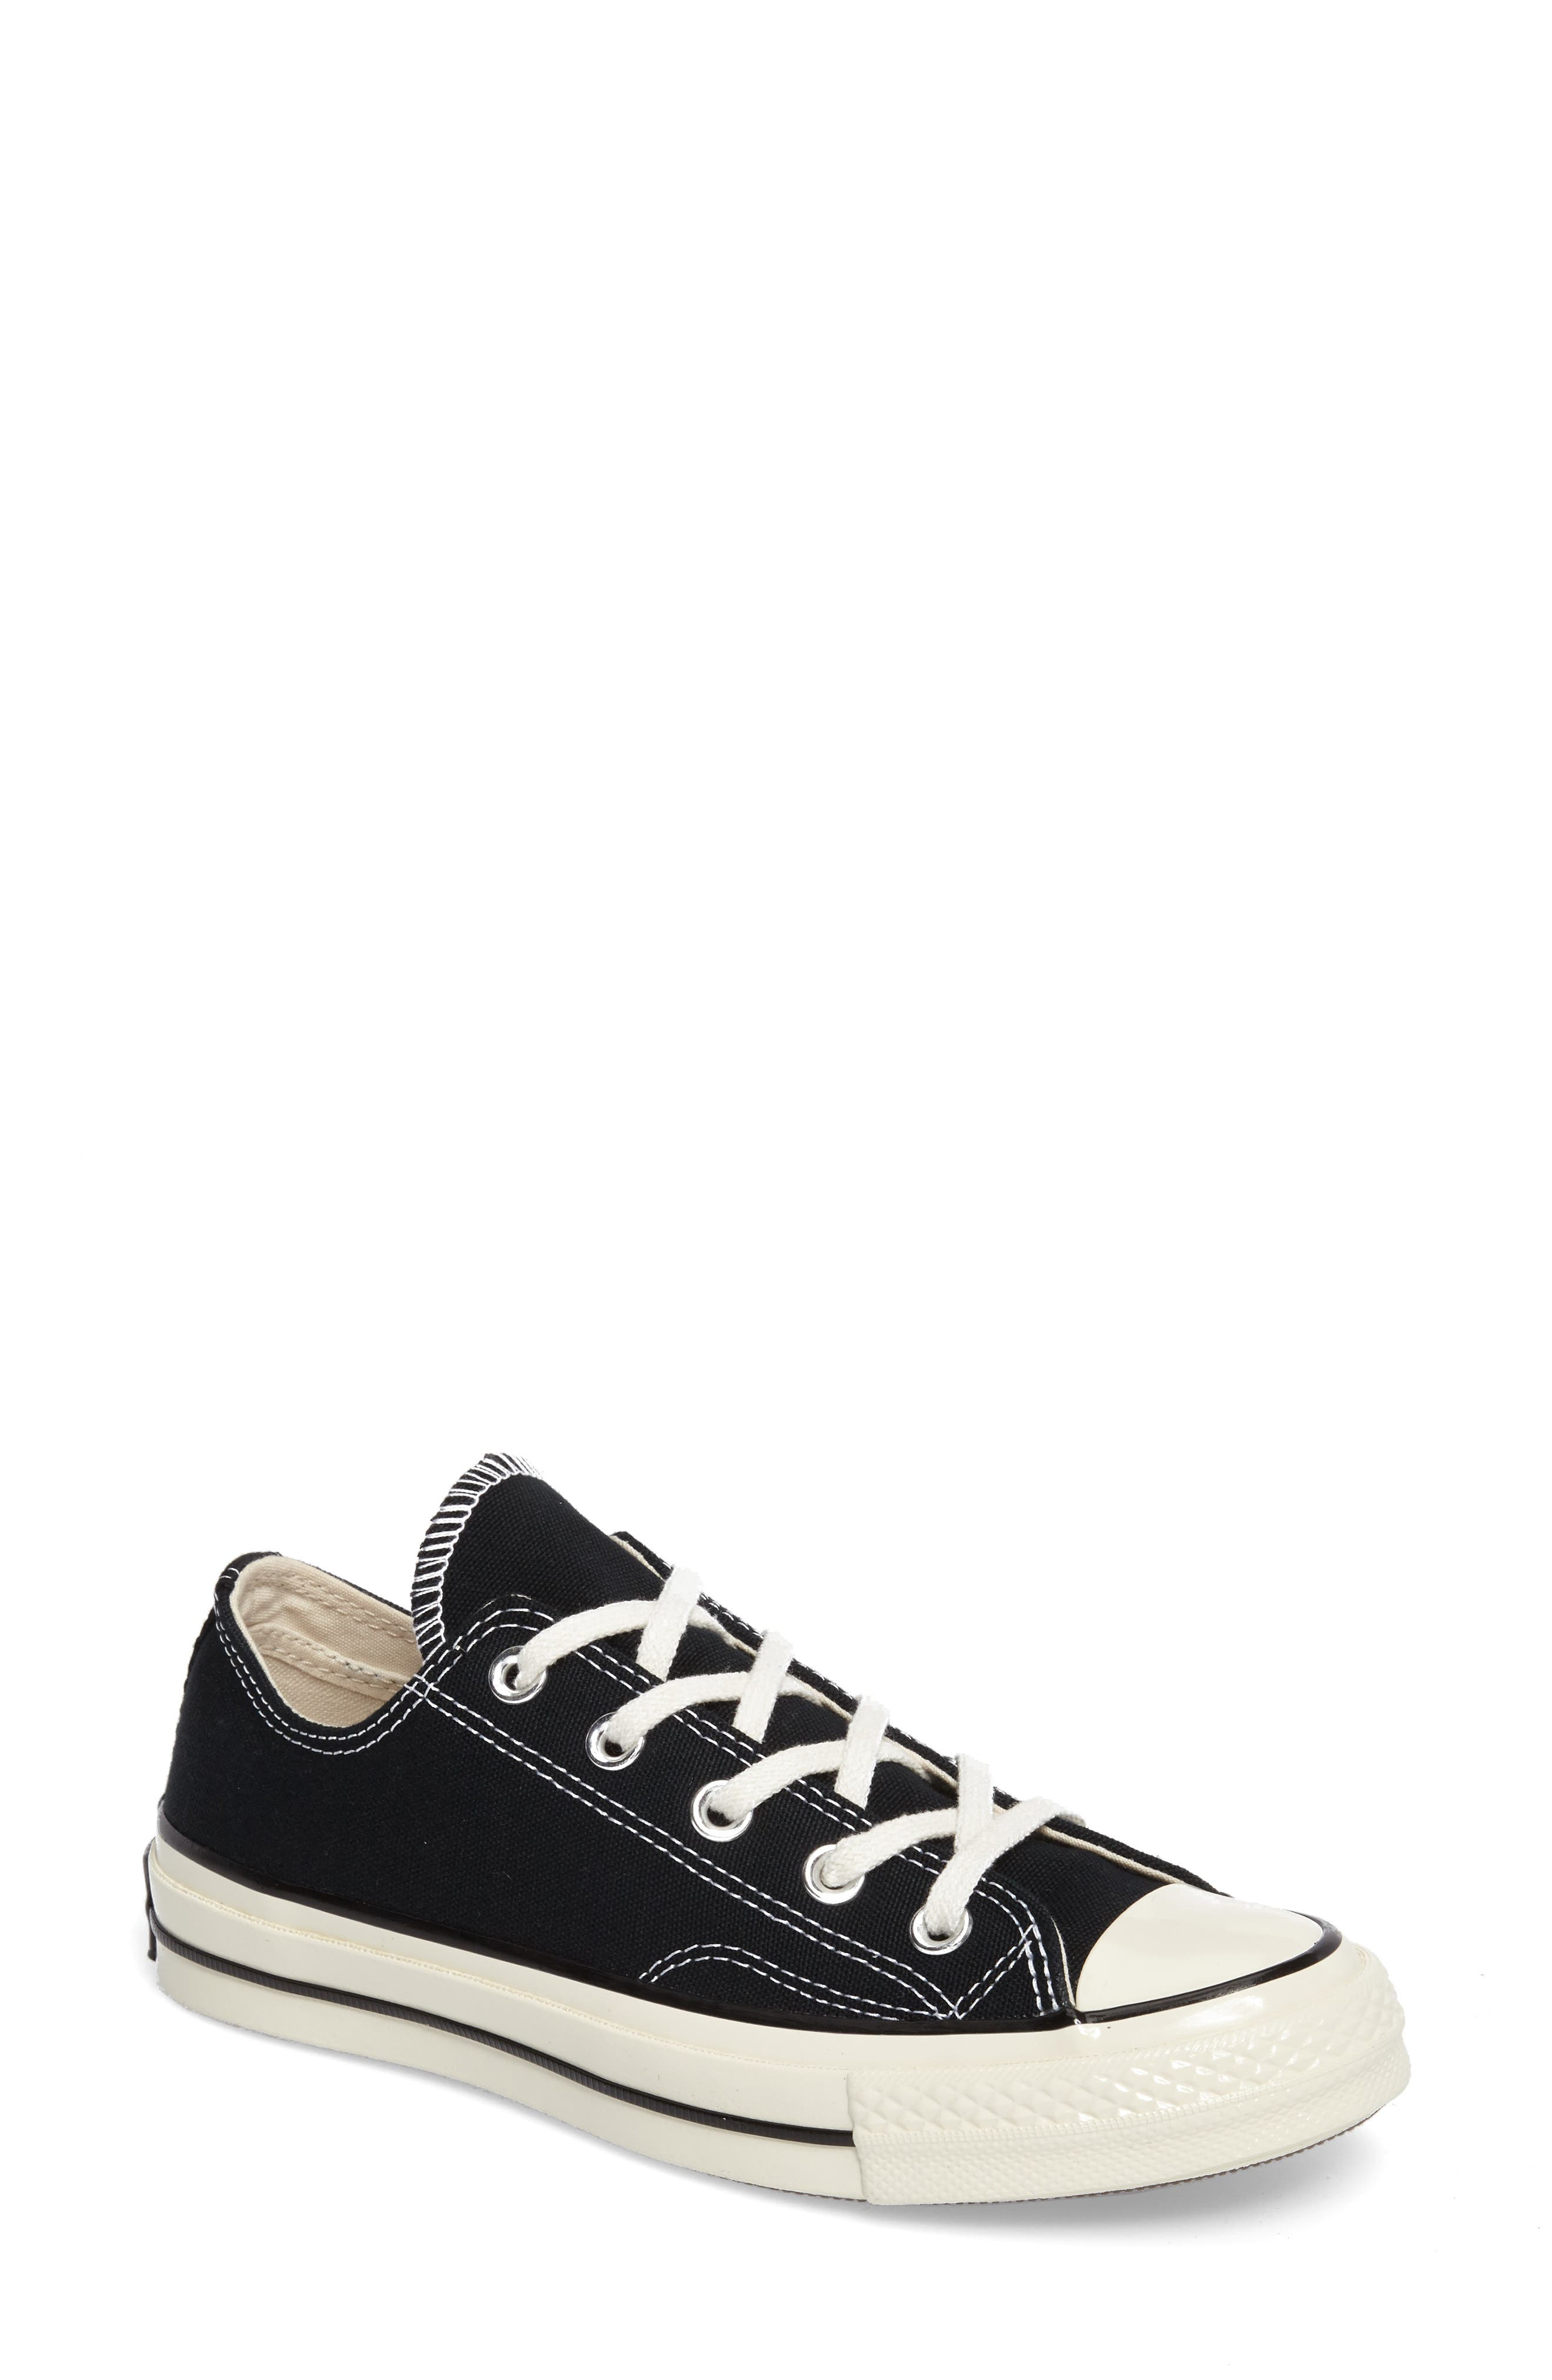 Chuck Taylor<sup>®</sup> All Star<sup>®</sup> Ox Low Top Sneaker,                             Main thumbnail 1, color,                             BLACK